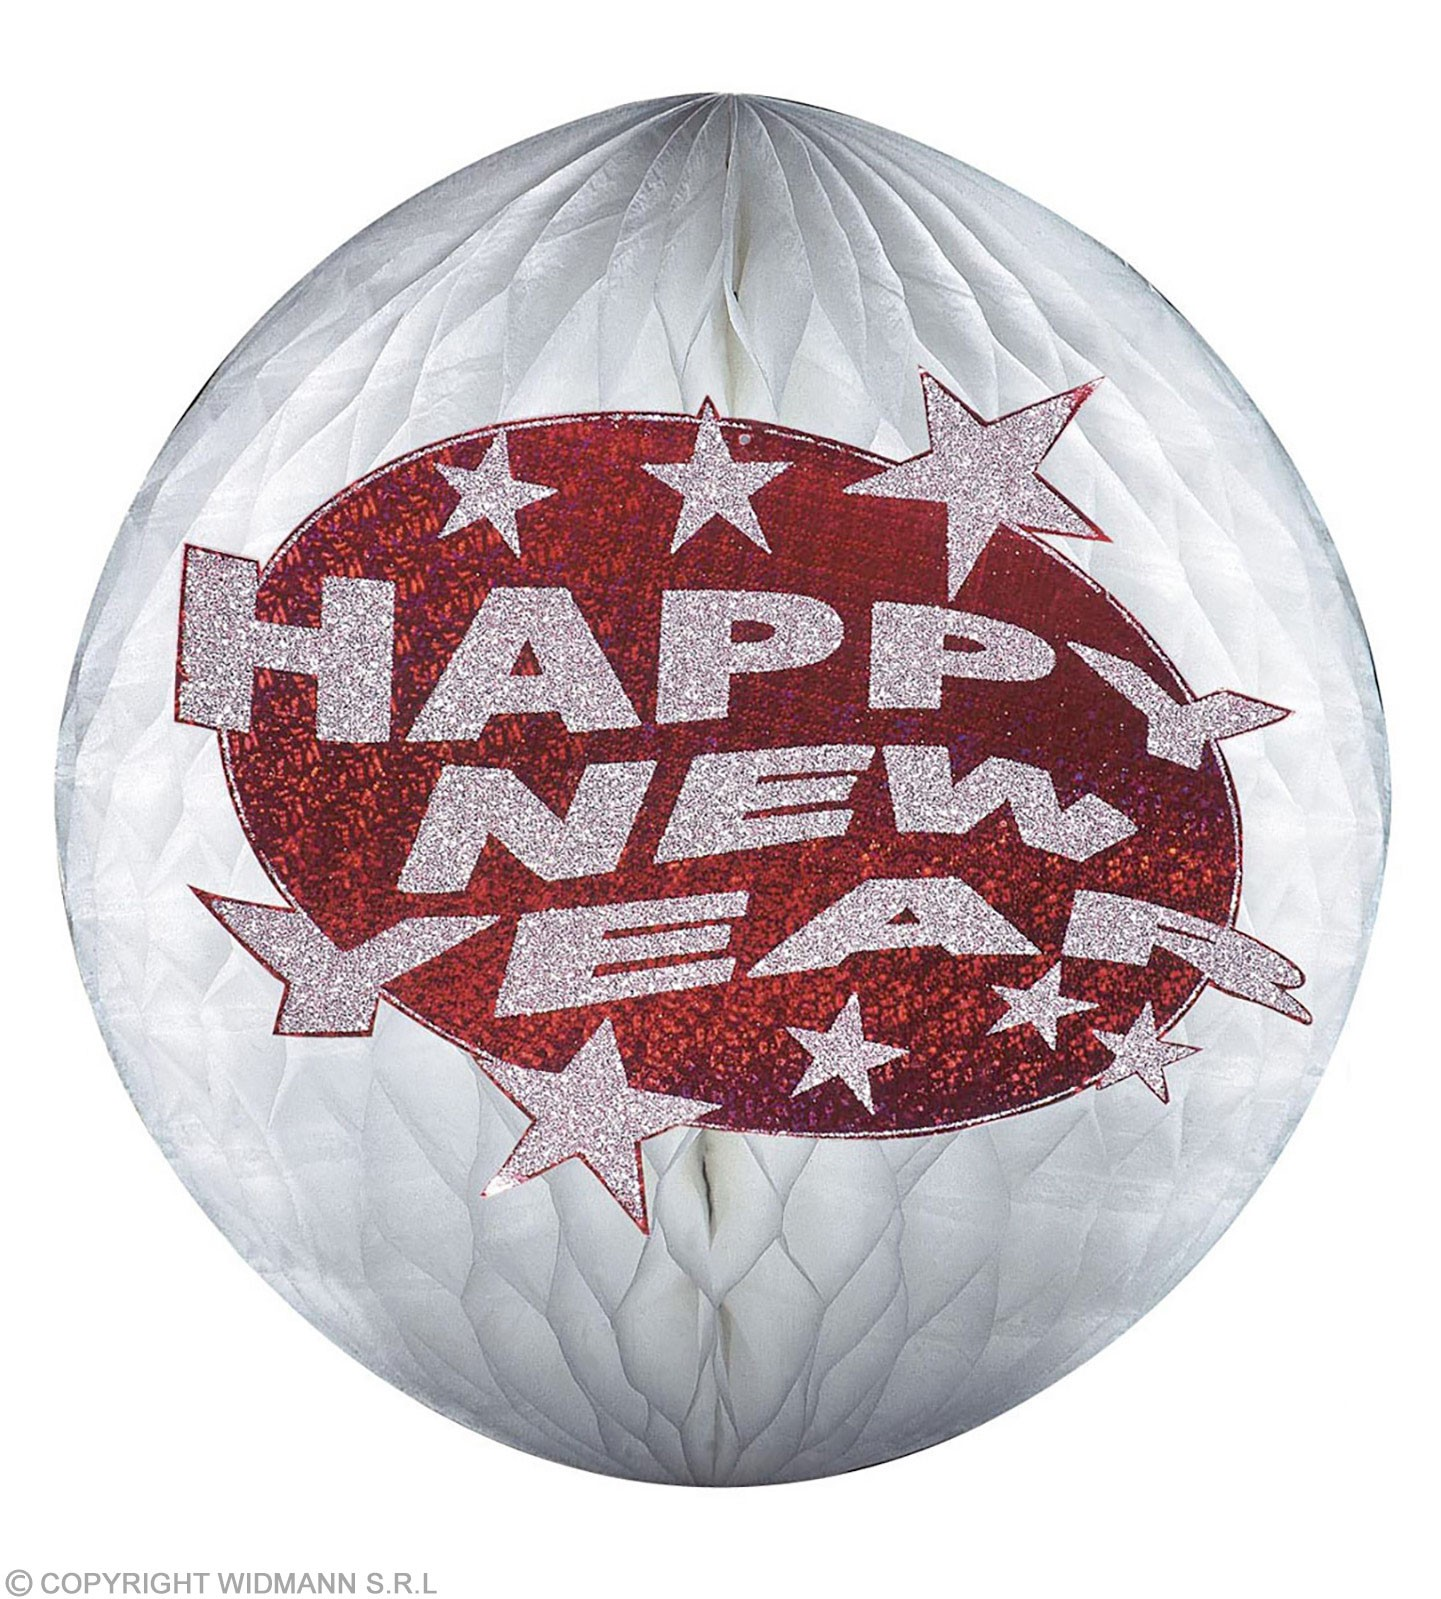 Hologr.Red Happy New Year Paper Balls Fancy Dress